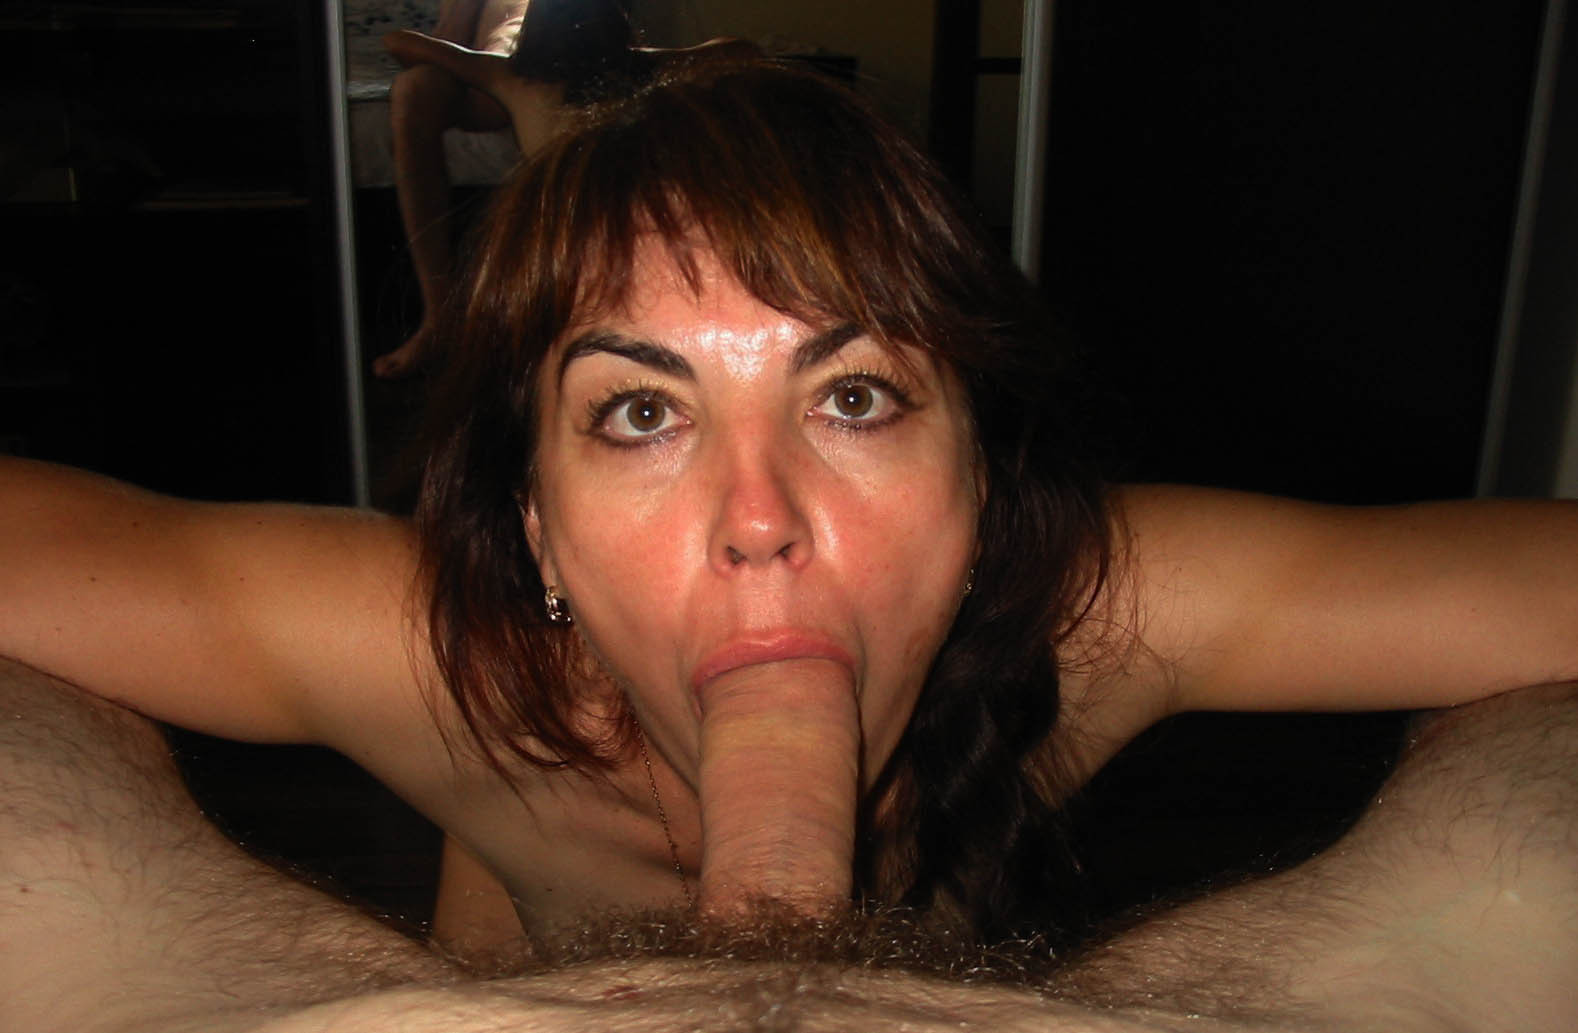 image Amateur wife blowjob with interesting technique